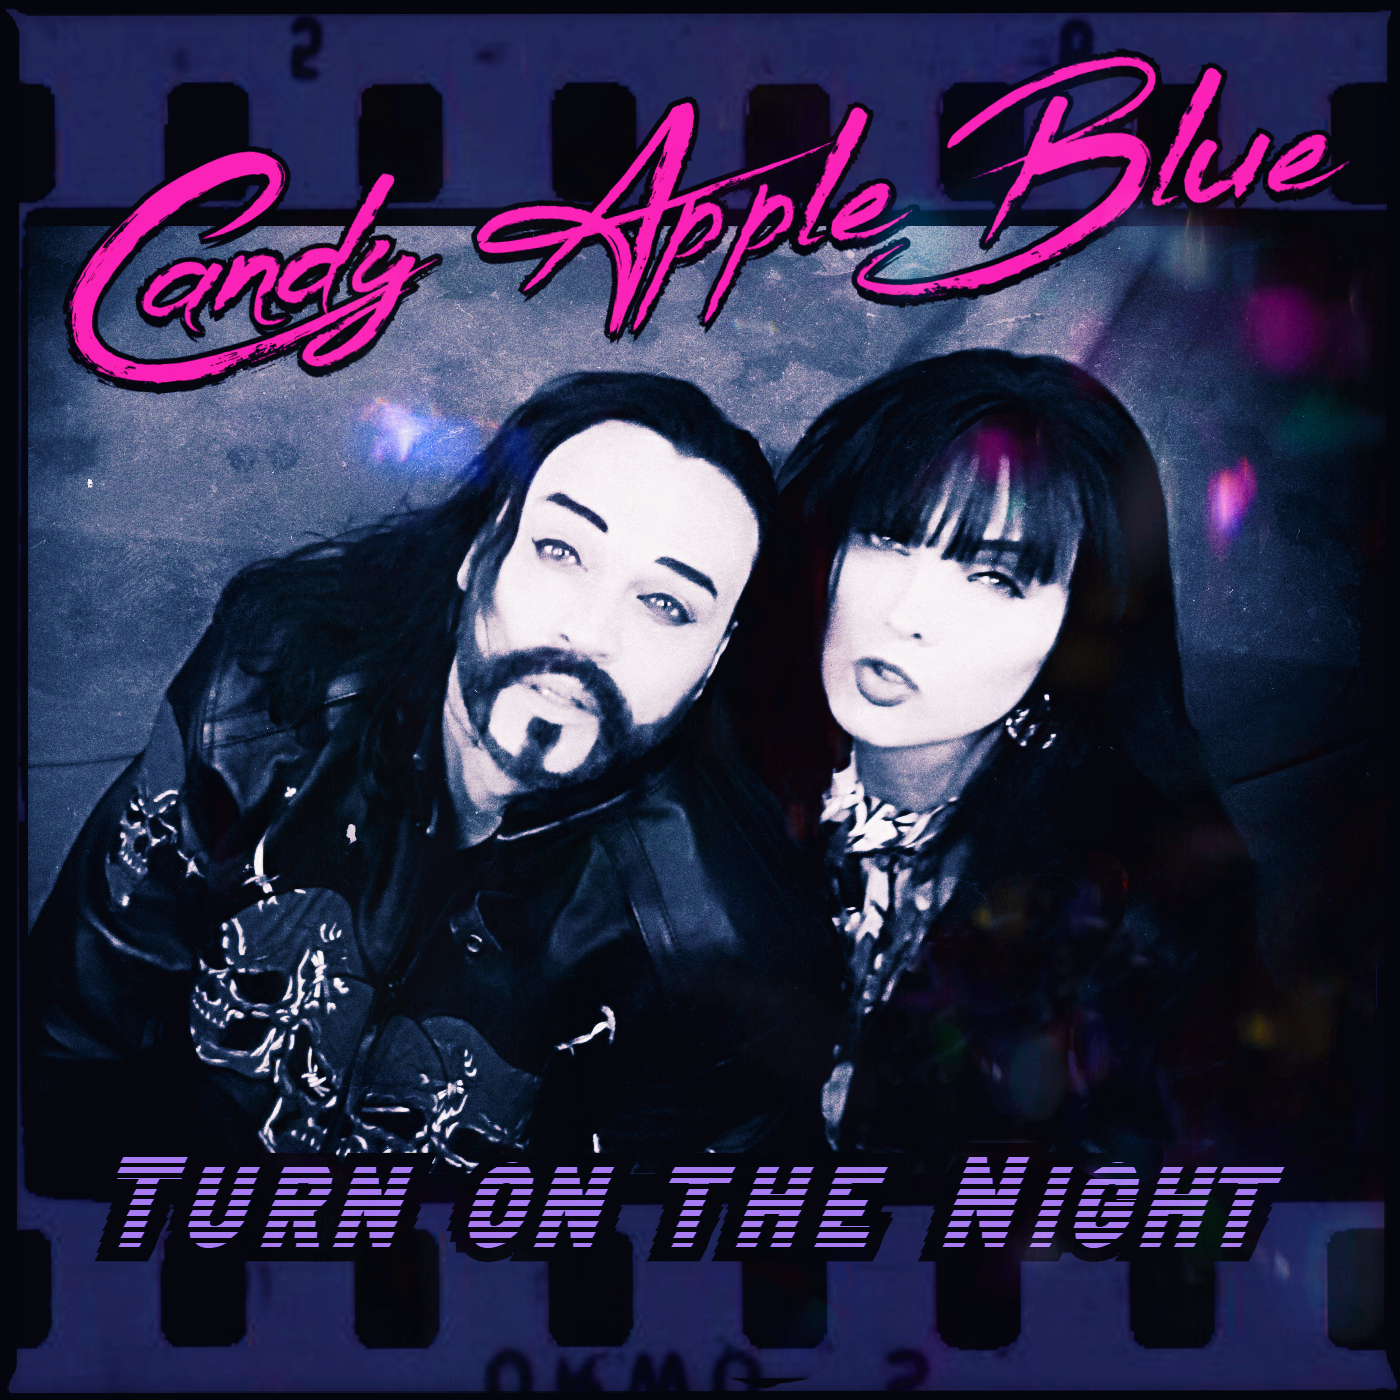 Candy Apple Blue with Turn on the night debuts in the next Weekend New Beatz radio show